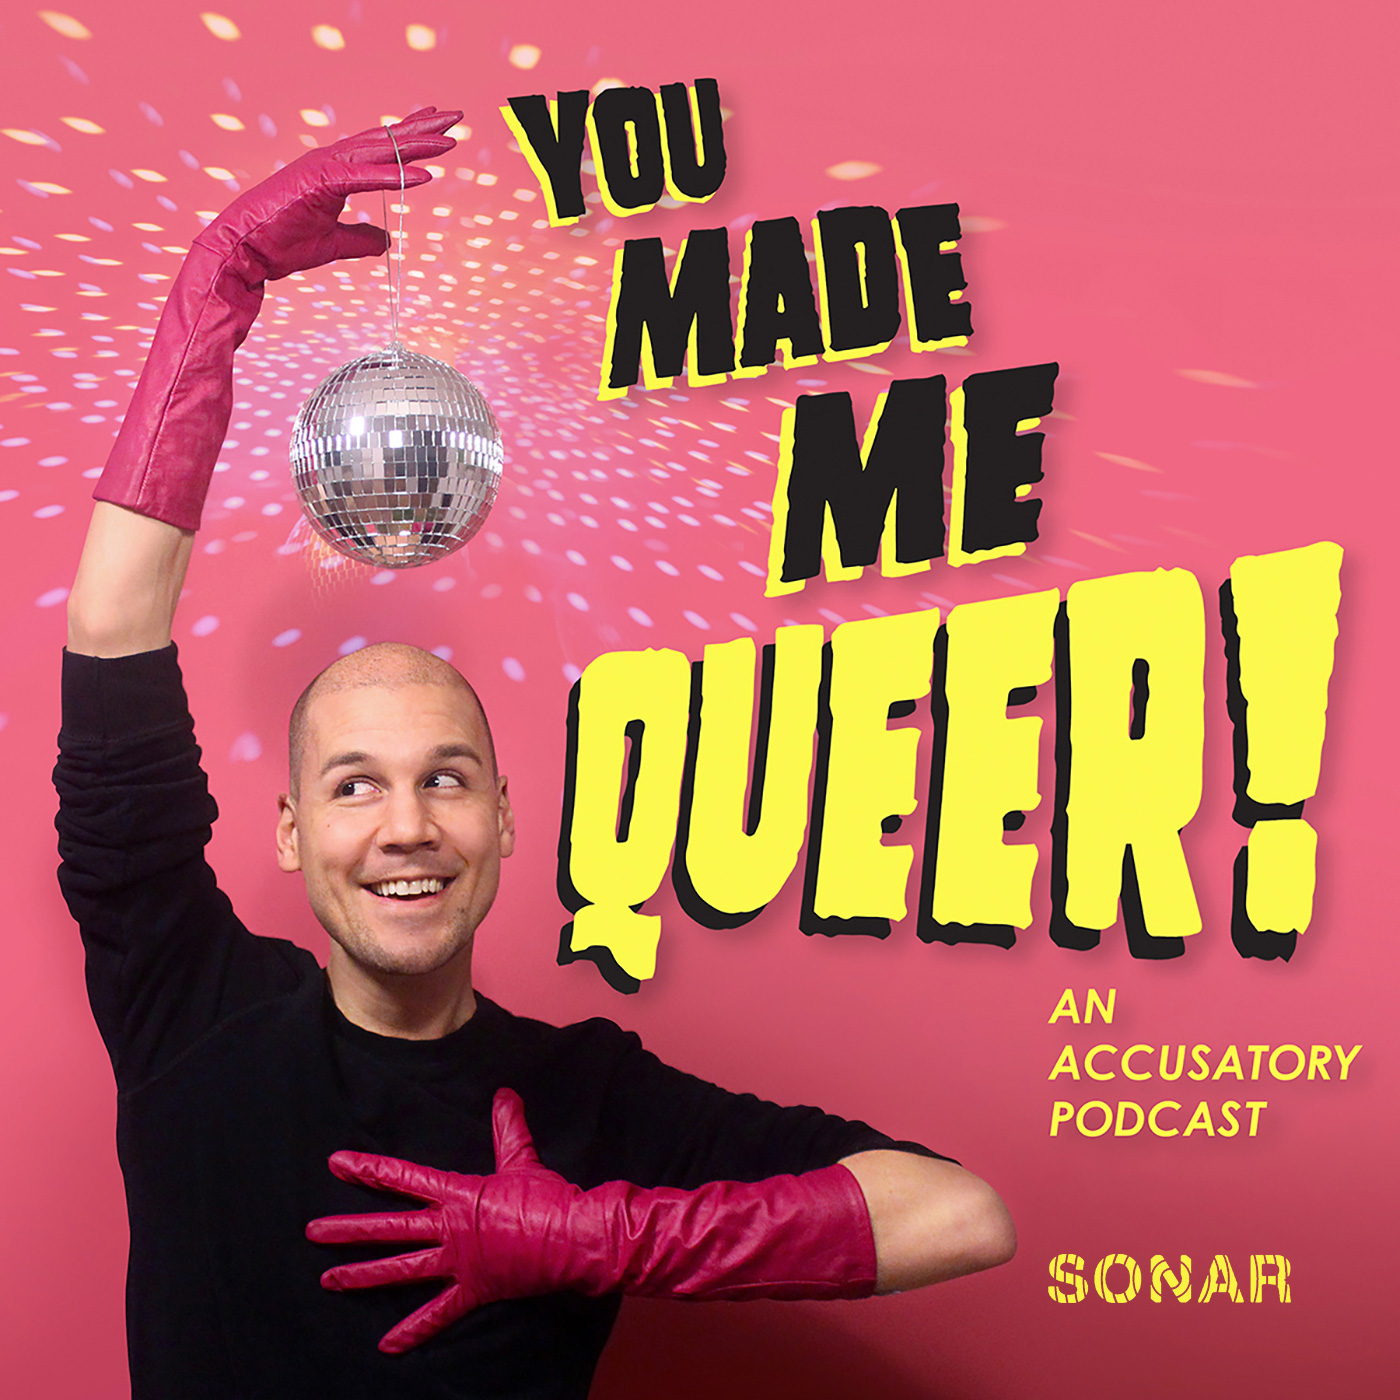 You Made Me Queer!